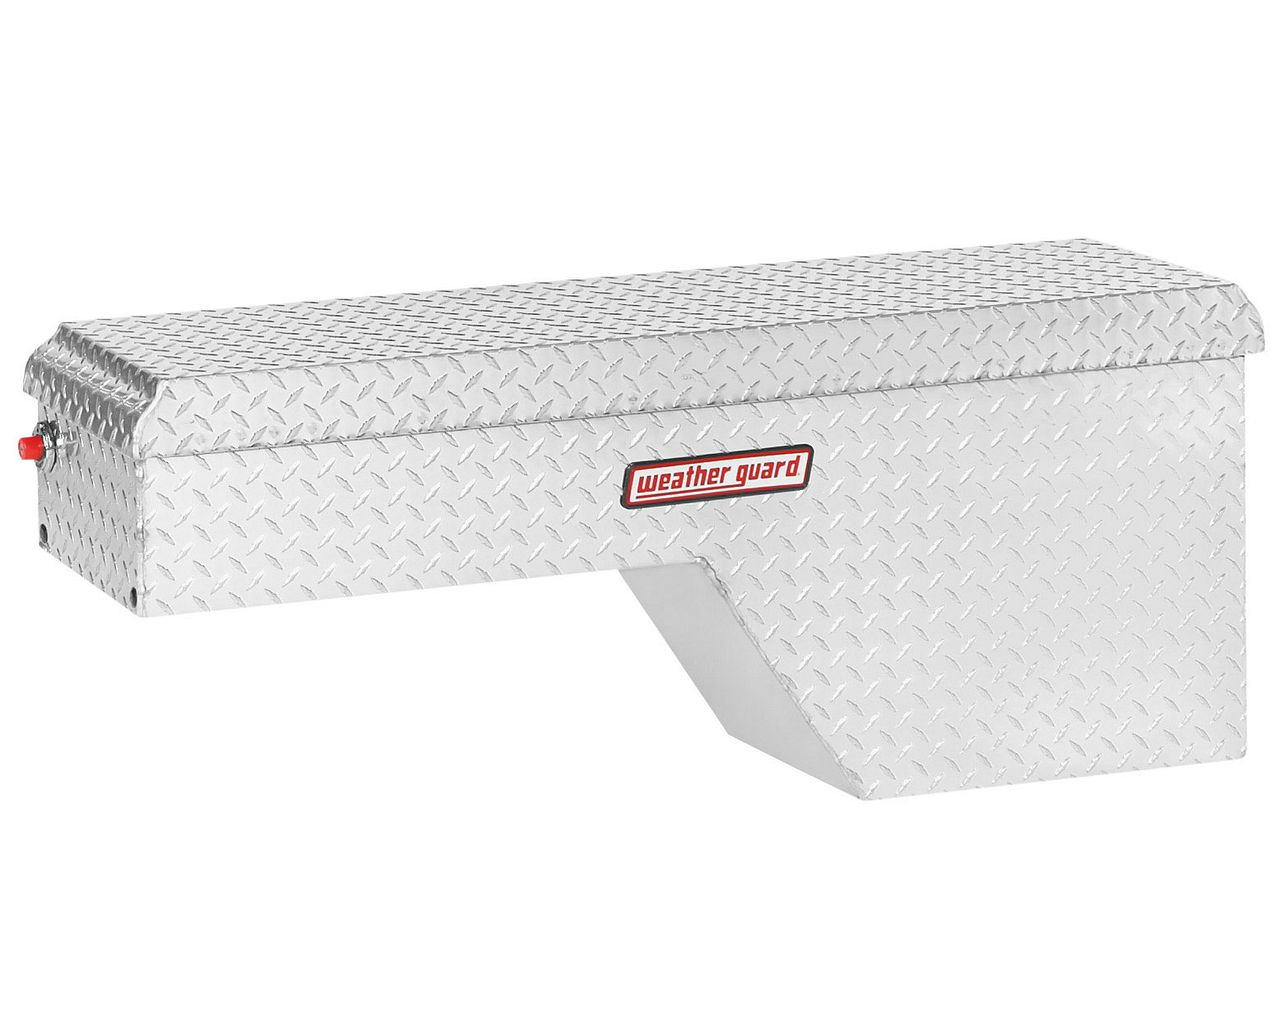 Weather Guard 173-0-01 Pork Chop Box, Aluminum, Passenger Side